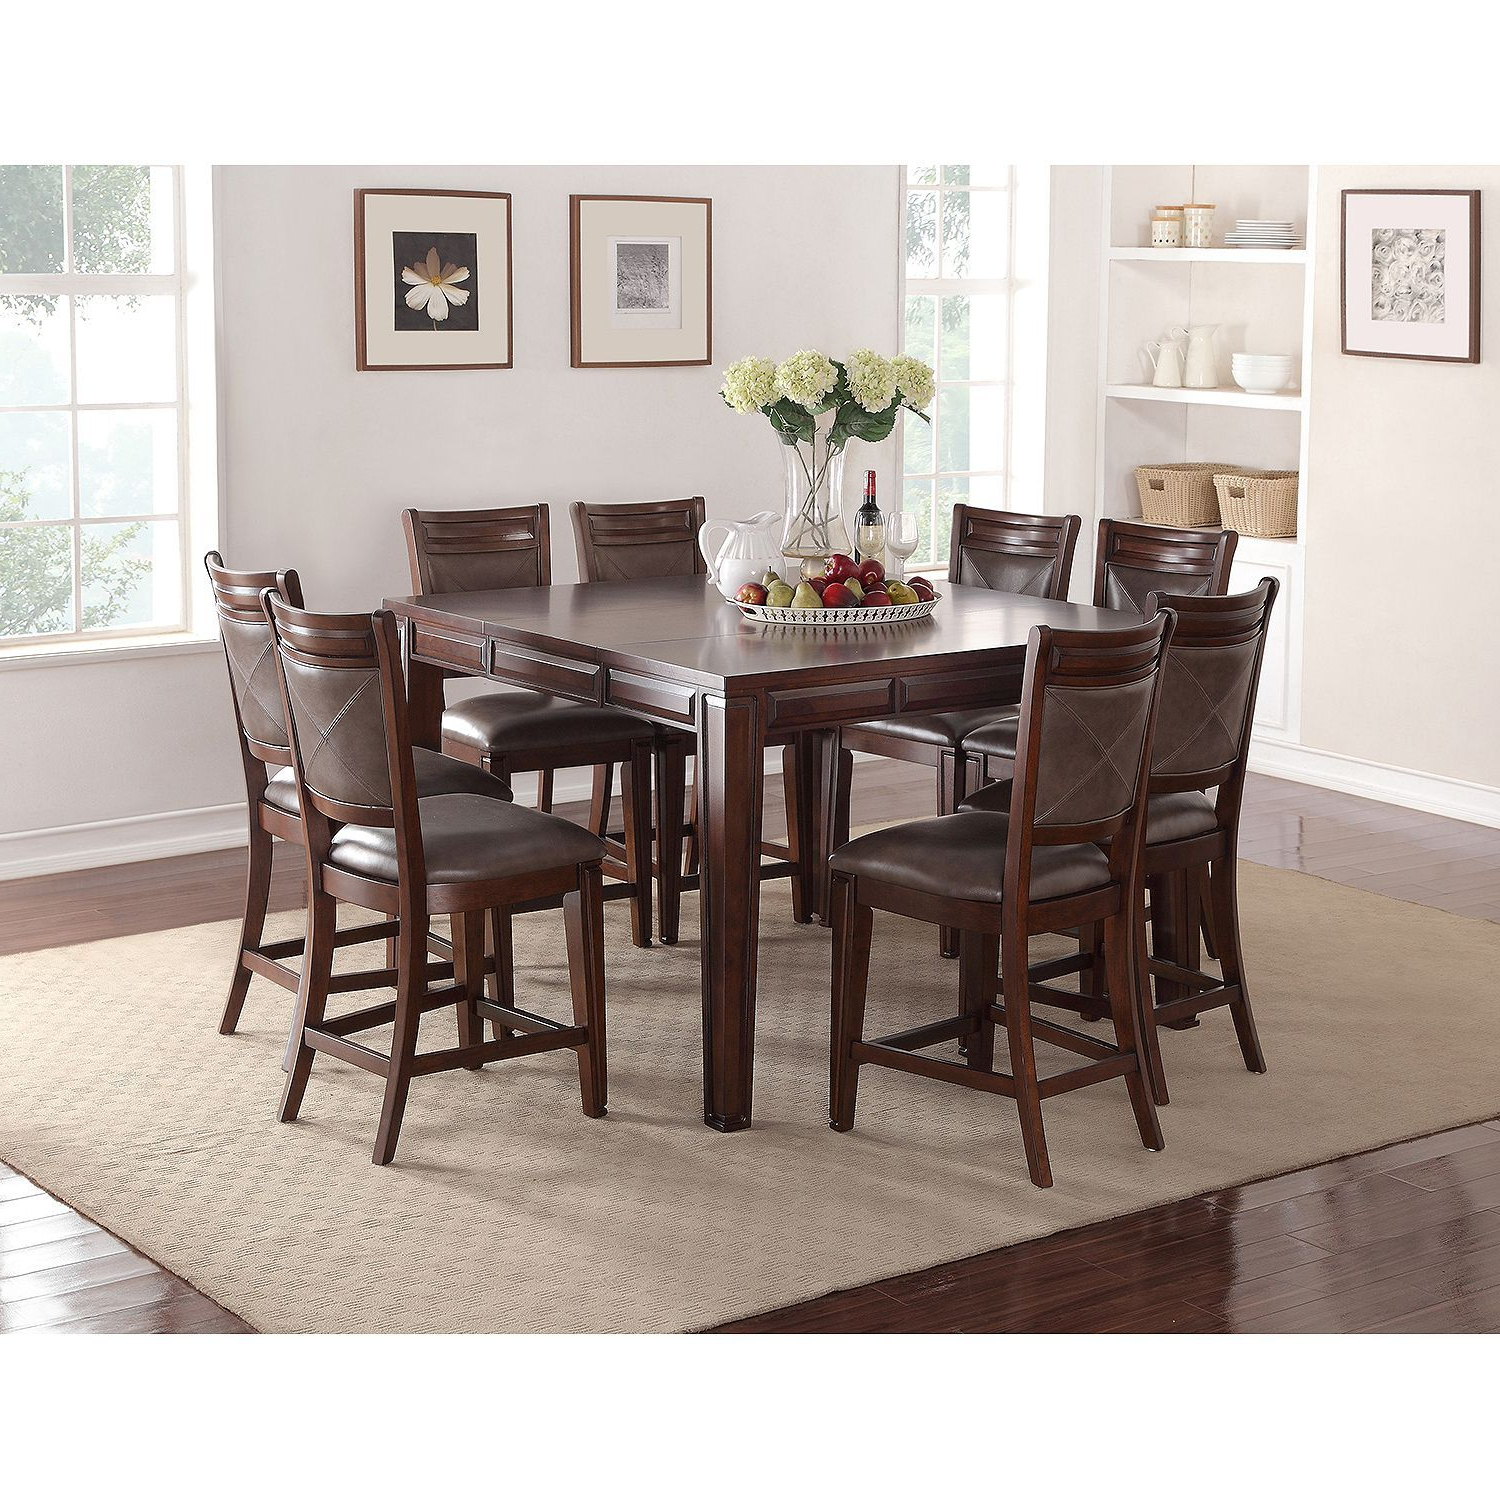 Well Liked Member's Mark Audrey Counter Height Table And Chairs, 9 In Transitional Antique Walnut Square Casual Dining Tables (View 22 of 25)